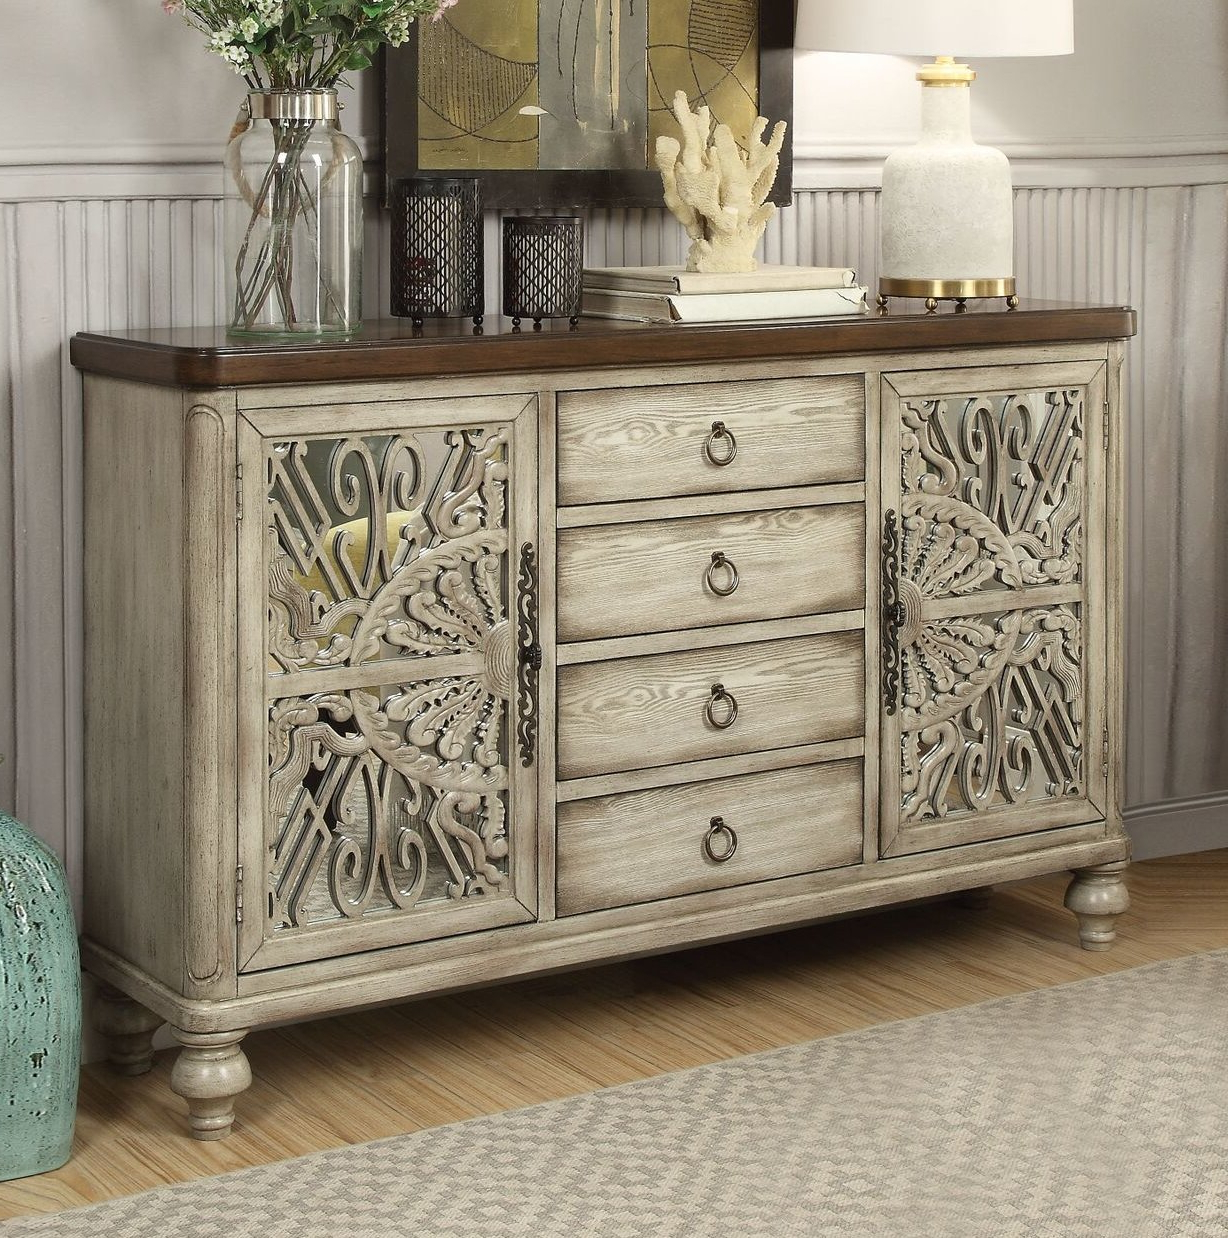 Chicoree Charlena Sideboards With Most Current Antique White Sideboard Buffet (Gallery 9 of 20)